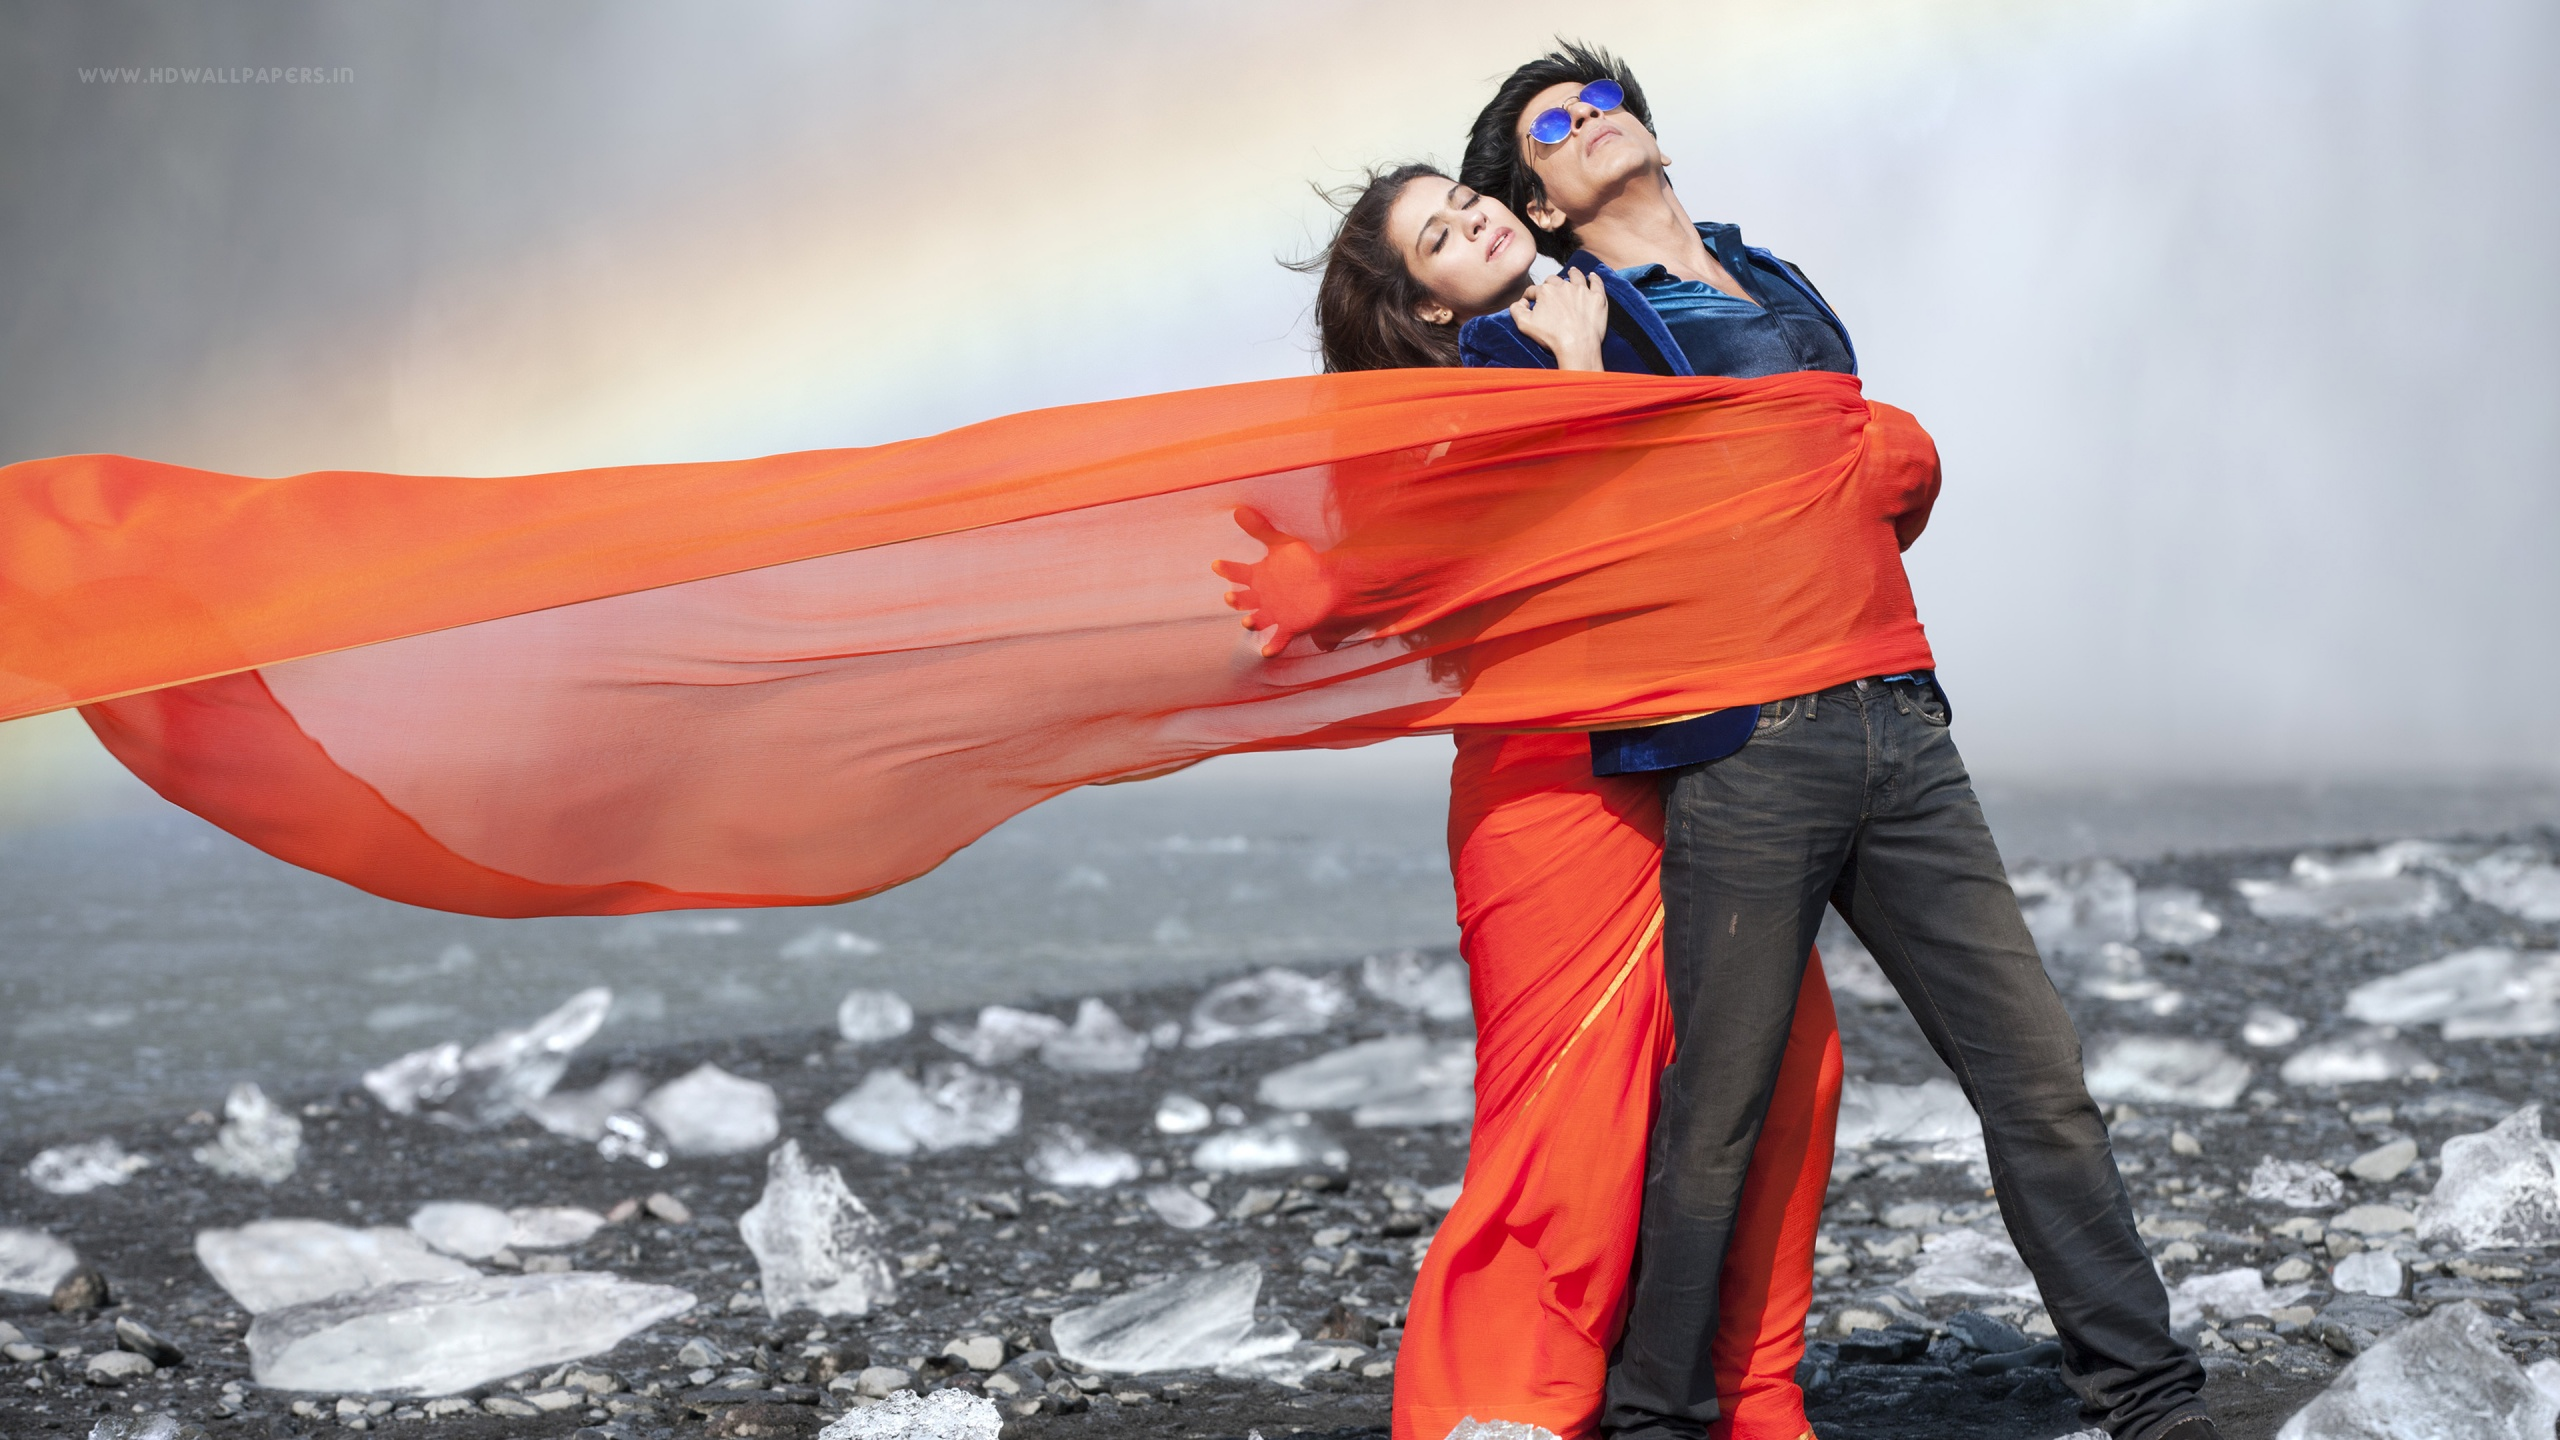 Dilwale shah rukh khan kajol wallpapers in jpg format for free.